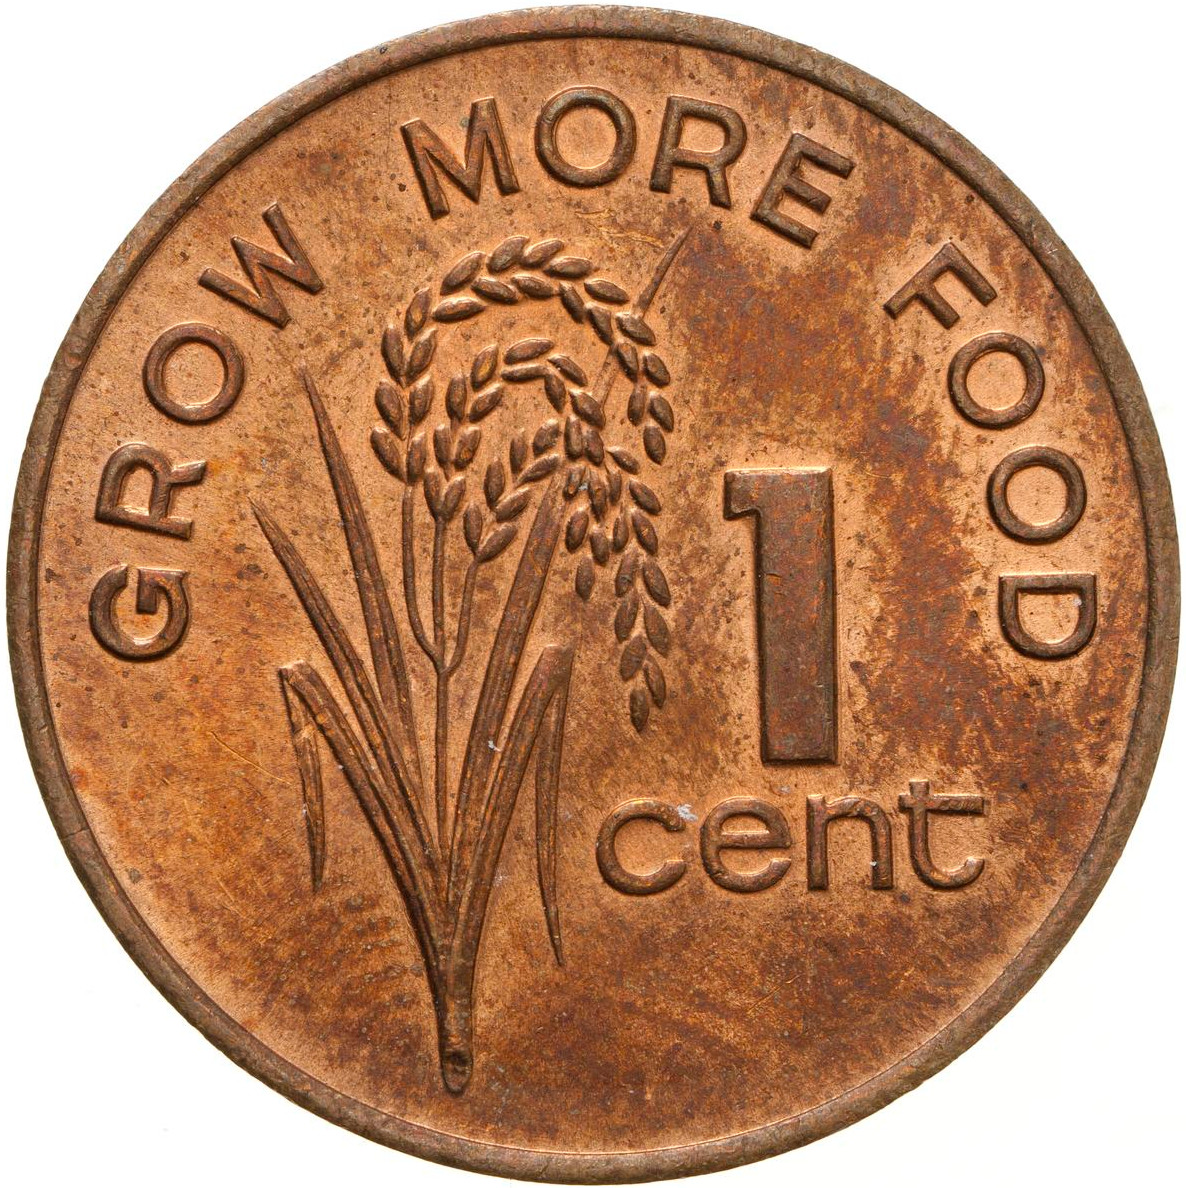 One Cent 1980 FAO: Photo Coin - 1 Cent, Fiji, 1980